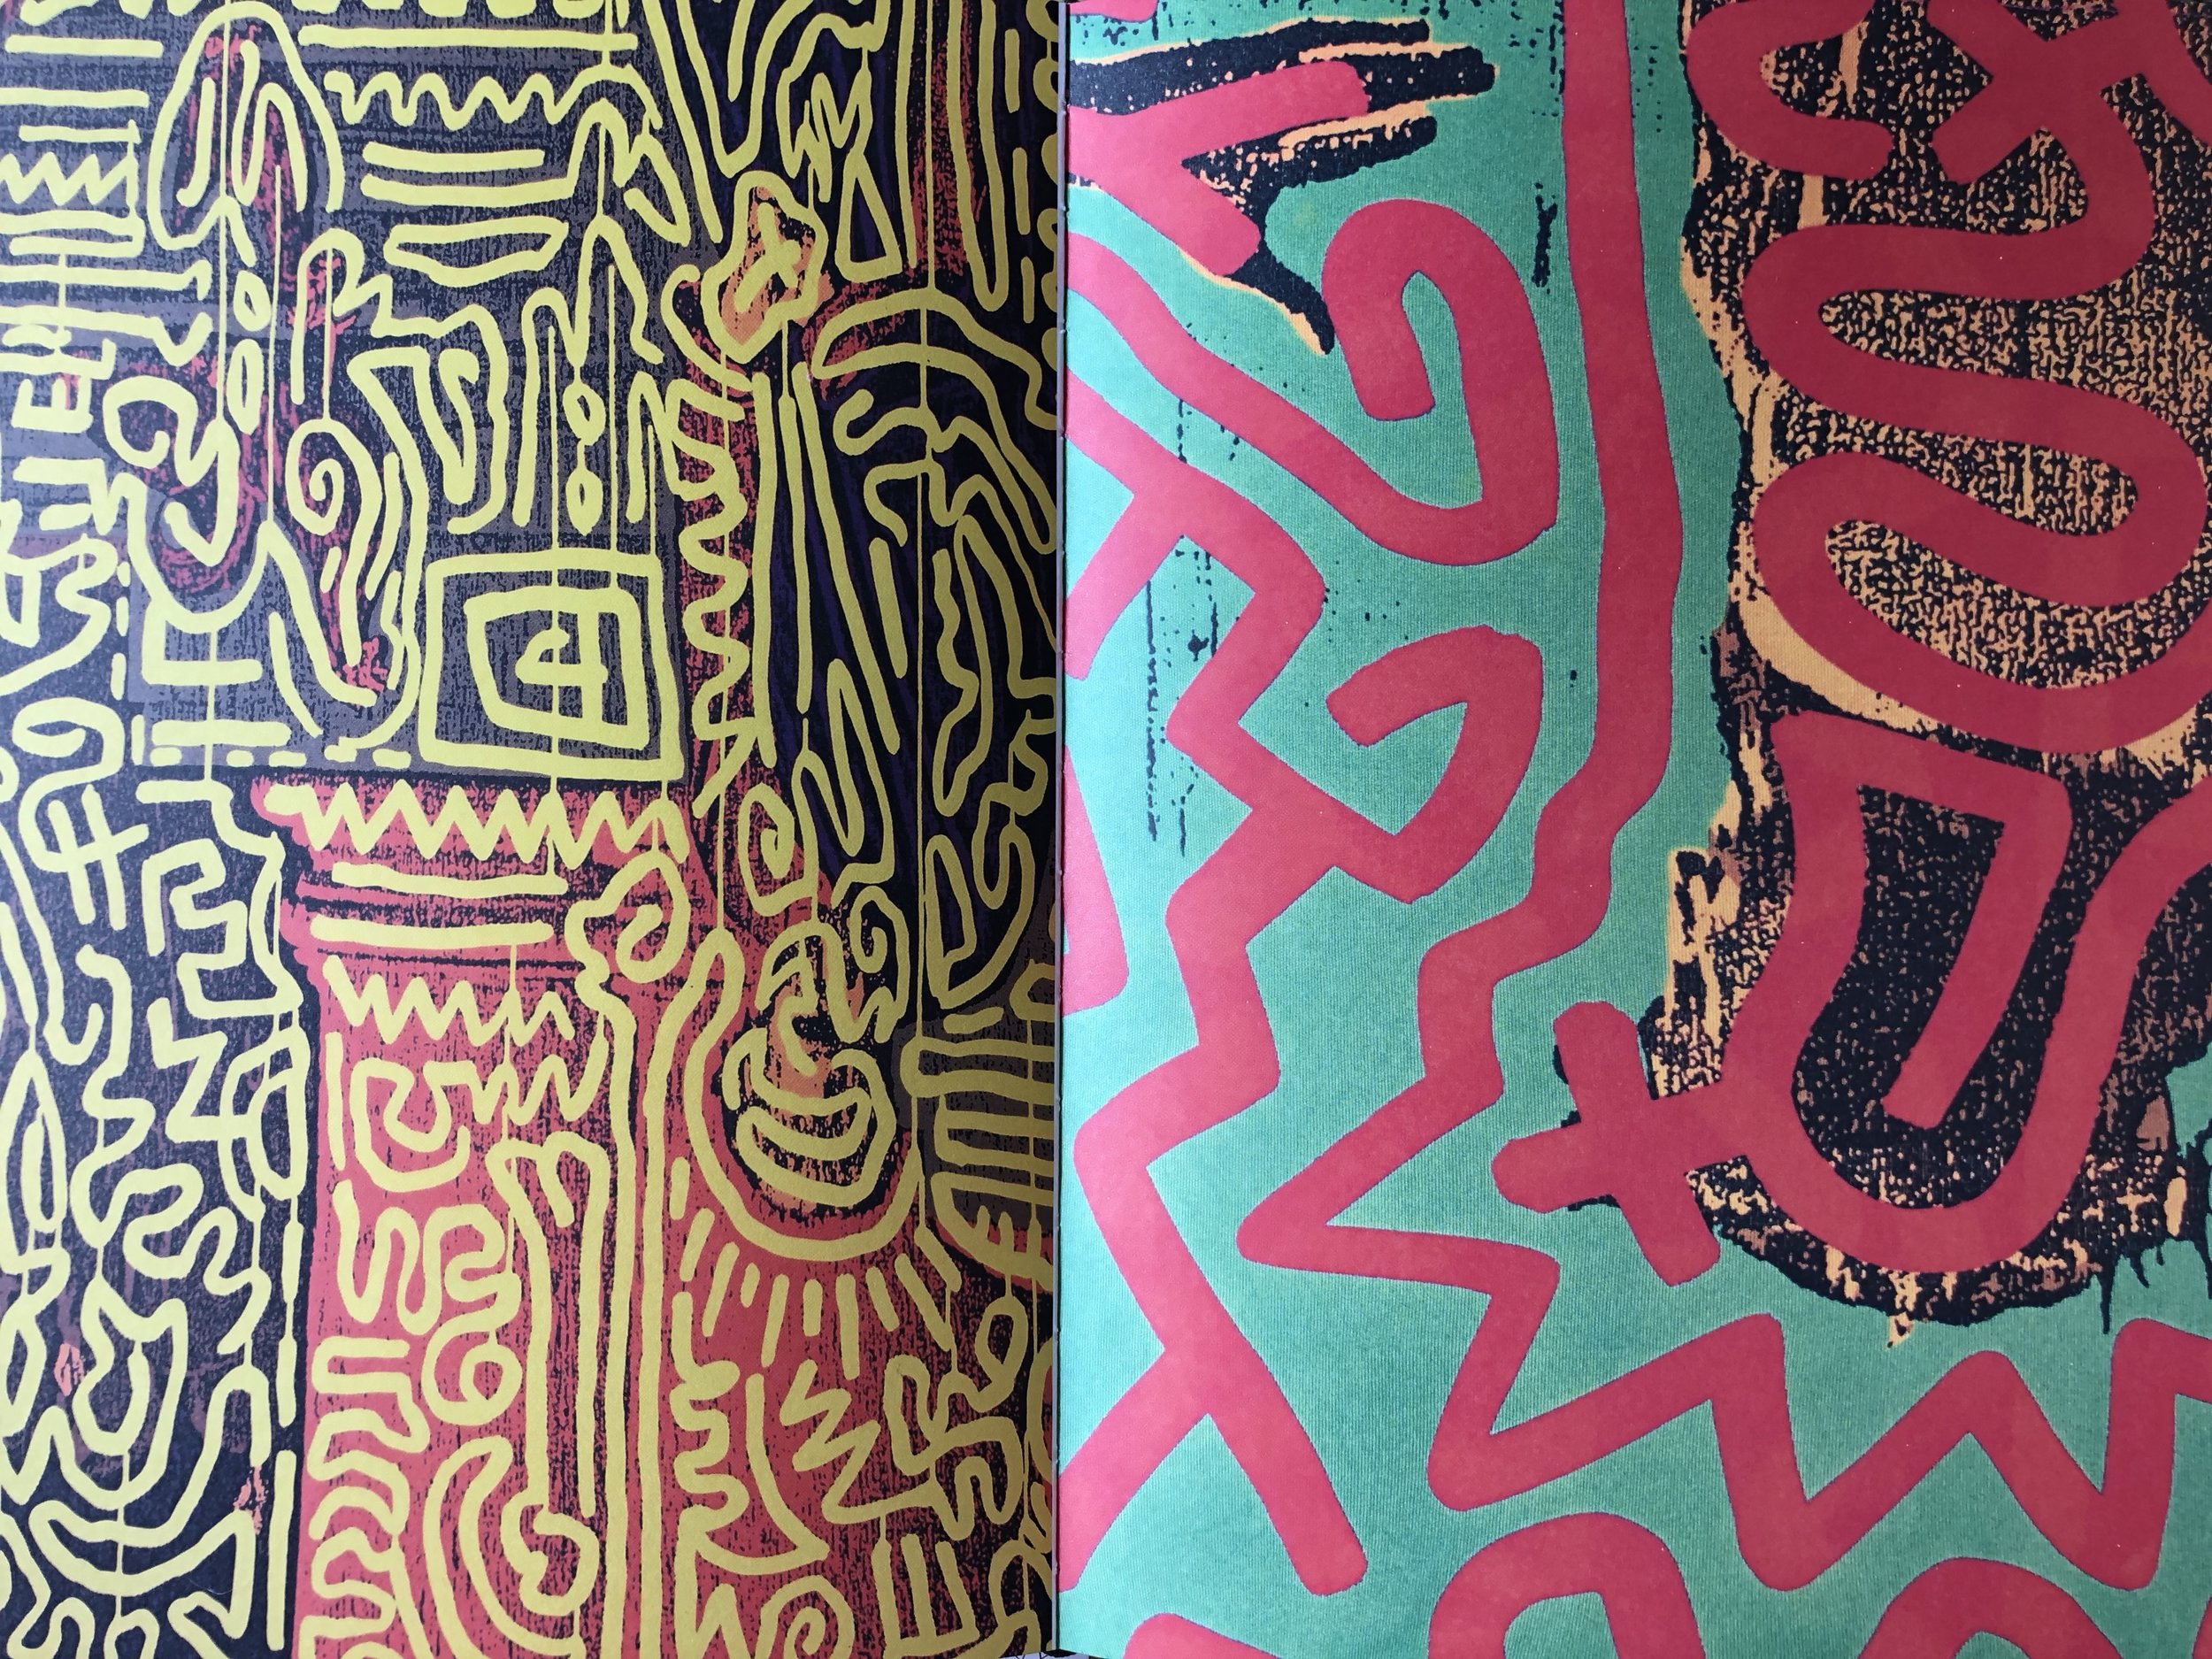 Graffiti, 1987 by Keith Haring x Stephen Sprouse